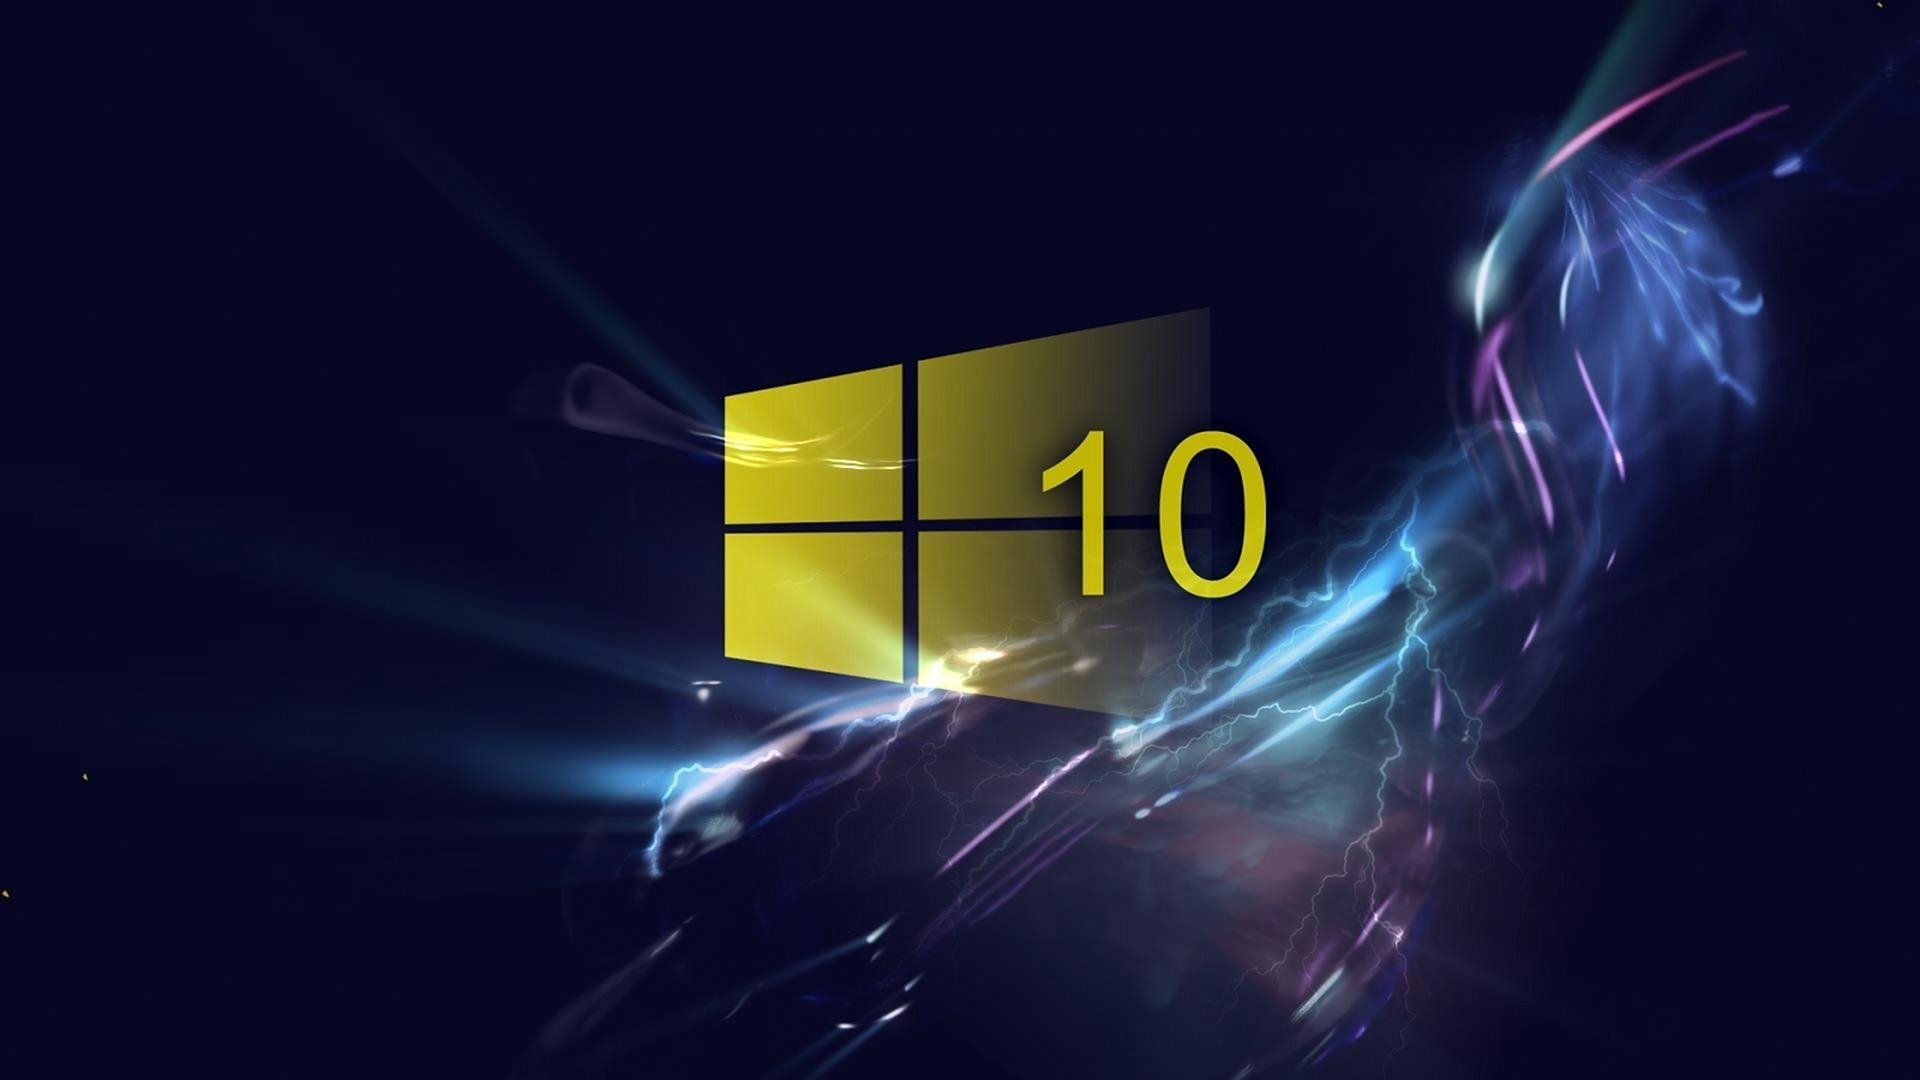 68 Windows 10 HD Wallpapers Background Images 1920x1080